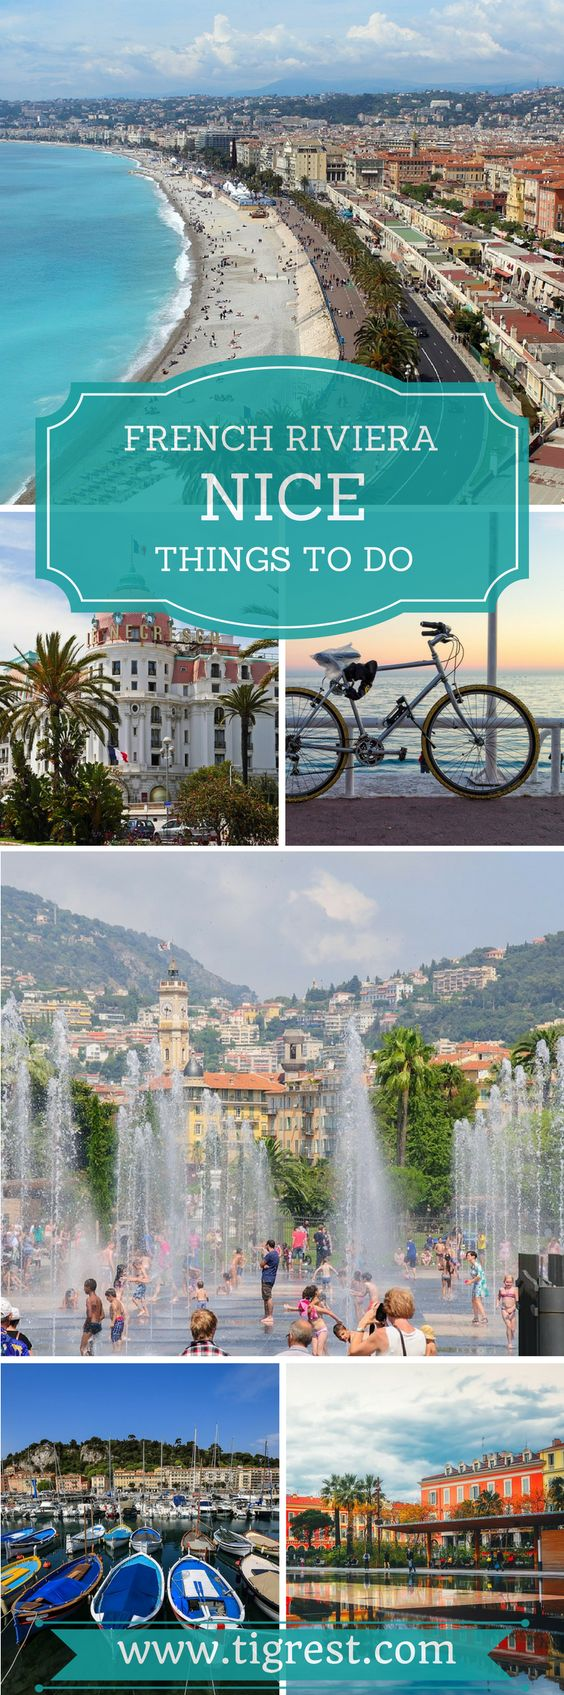 Read about our trip to Nice France. Where to go, what to see and how to spend an unforgettable day in French Riviera